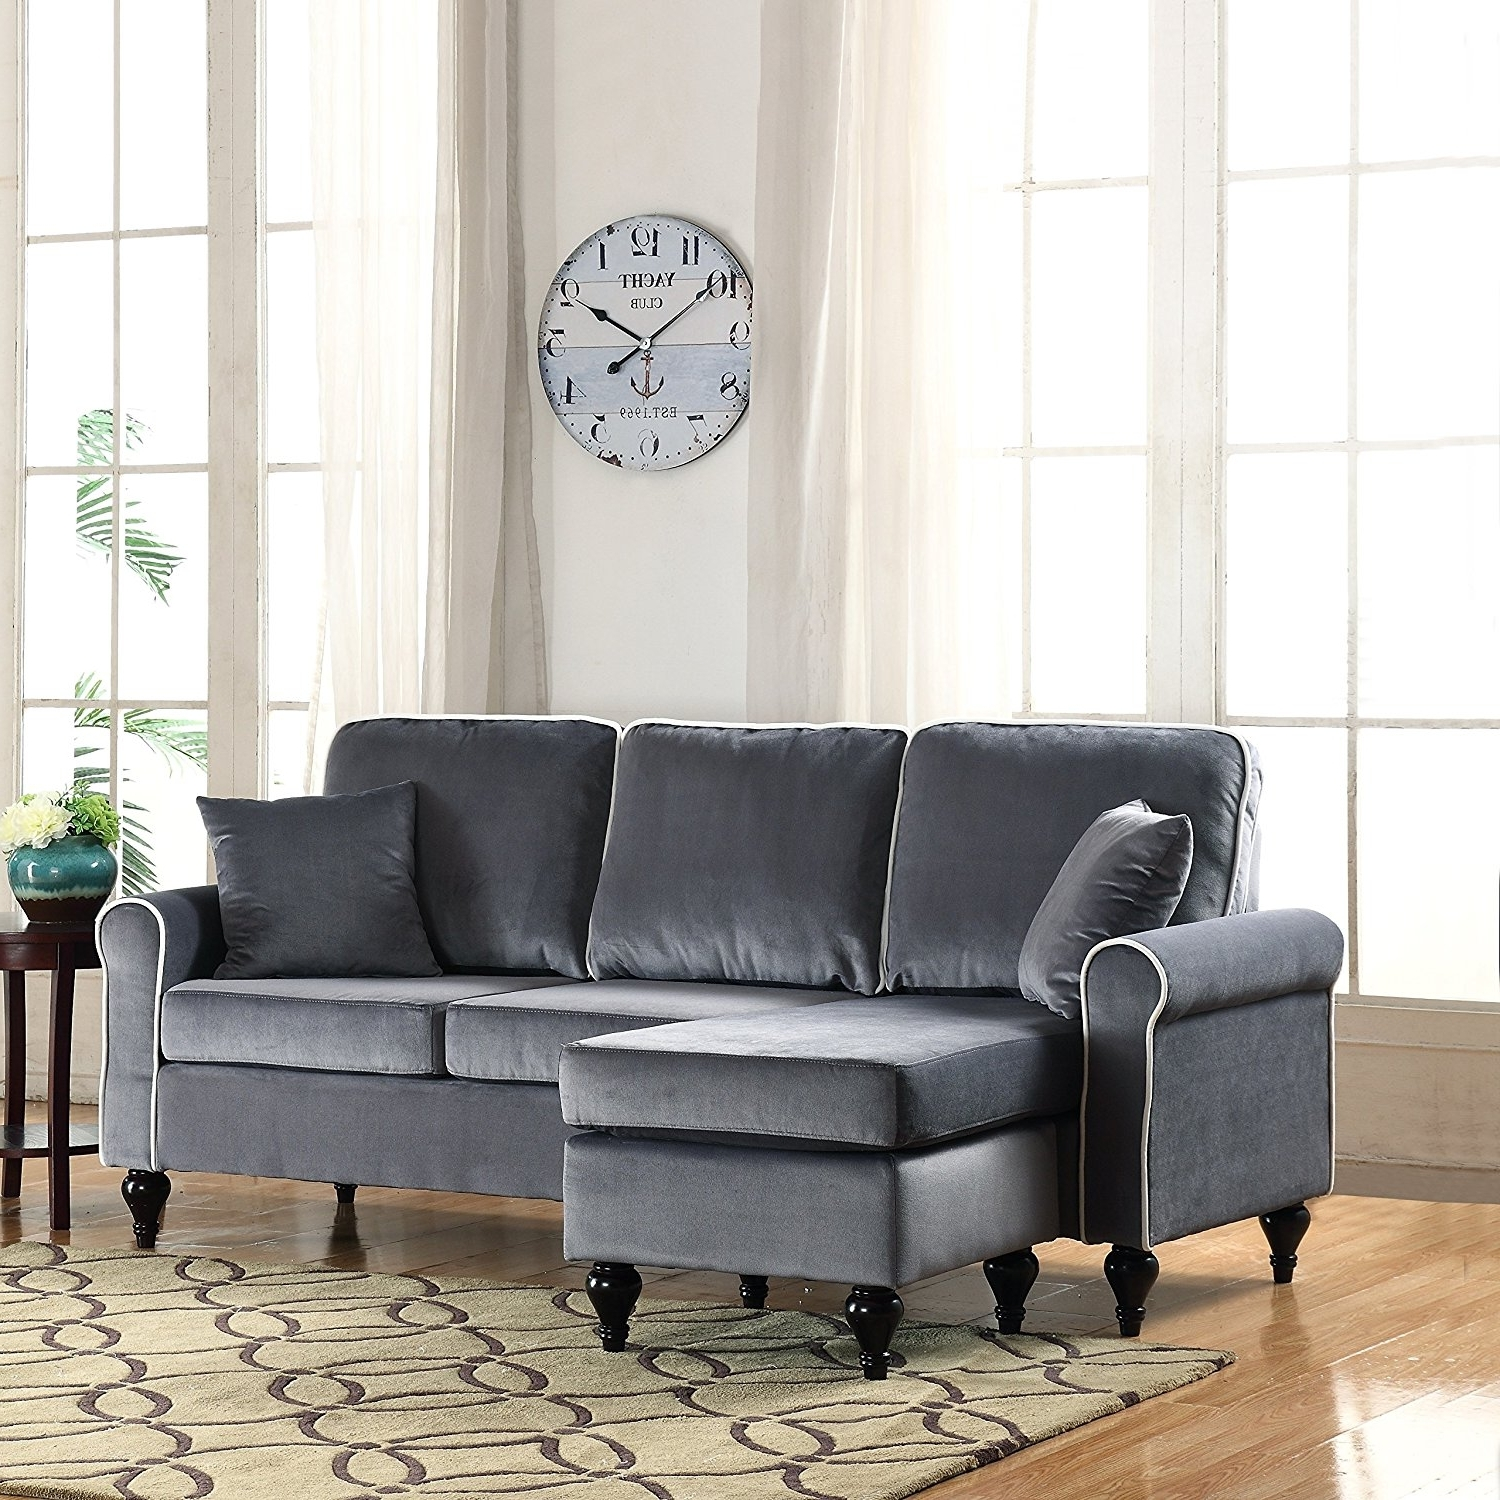 Velvet Sectional Sofas With Chaise Throughout Most Recently Released Amazon: Classic And Traditional Small Space Velvet Sectional (View 13 of 15)